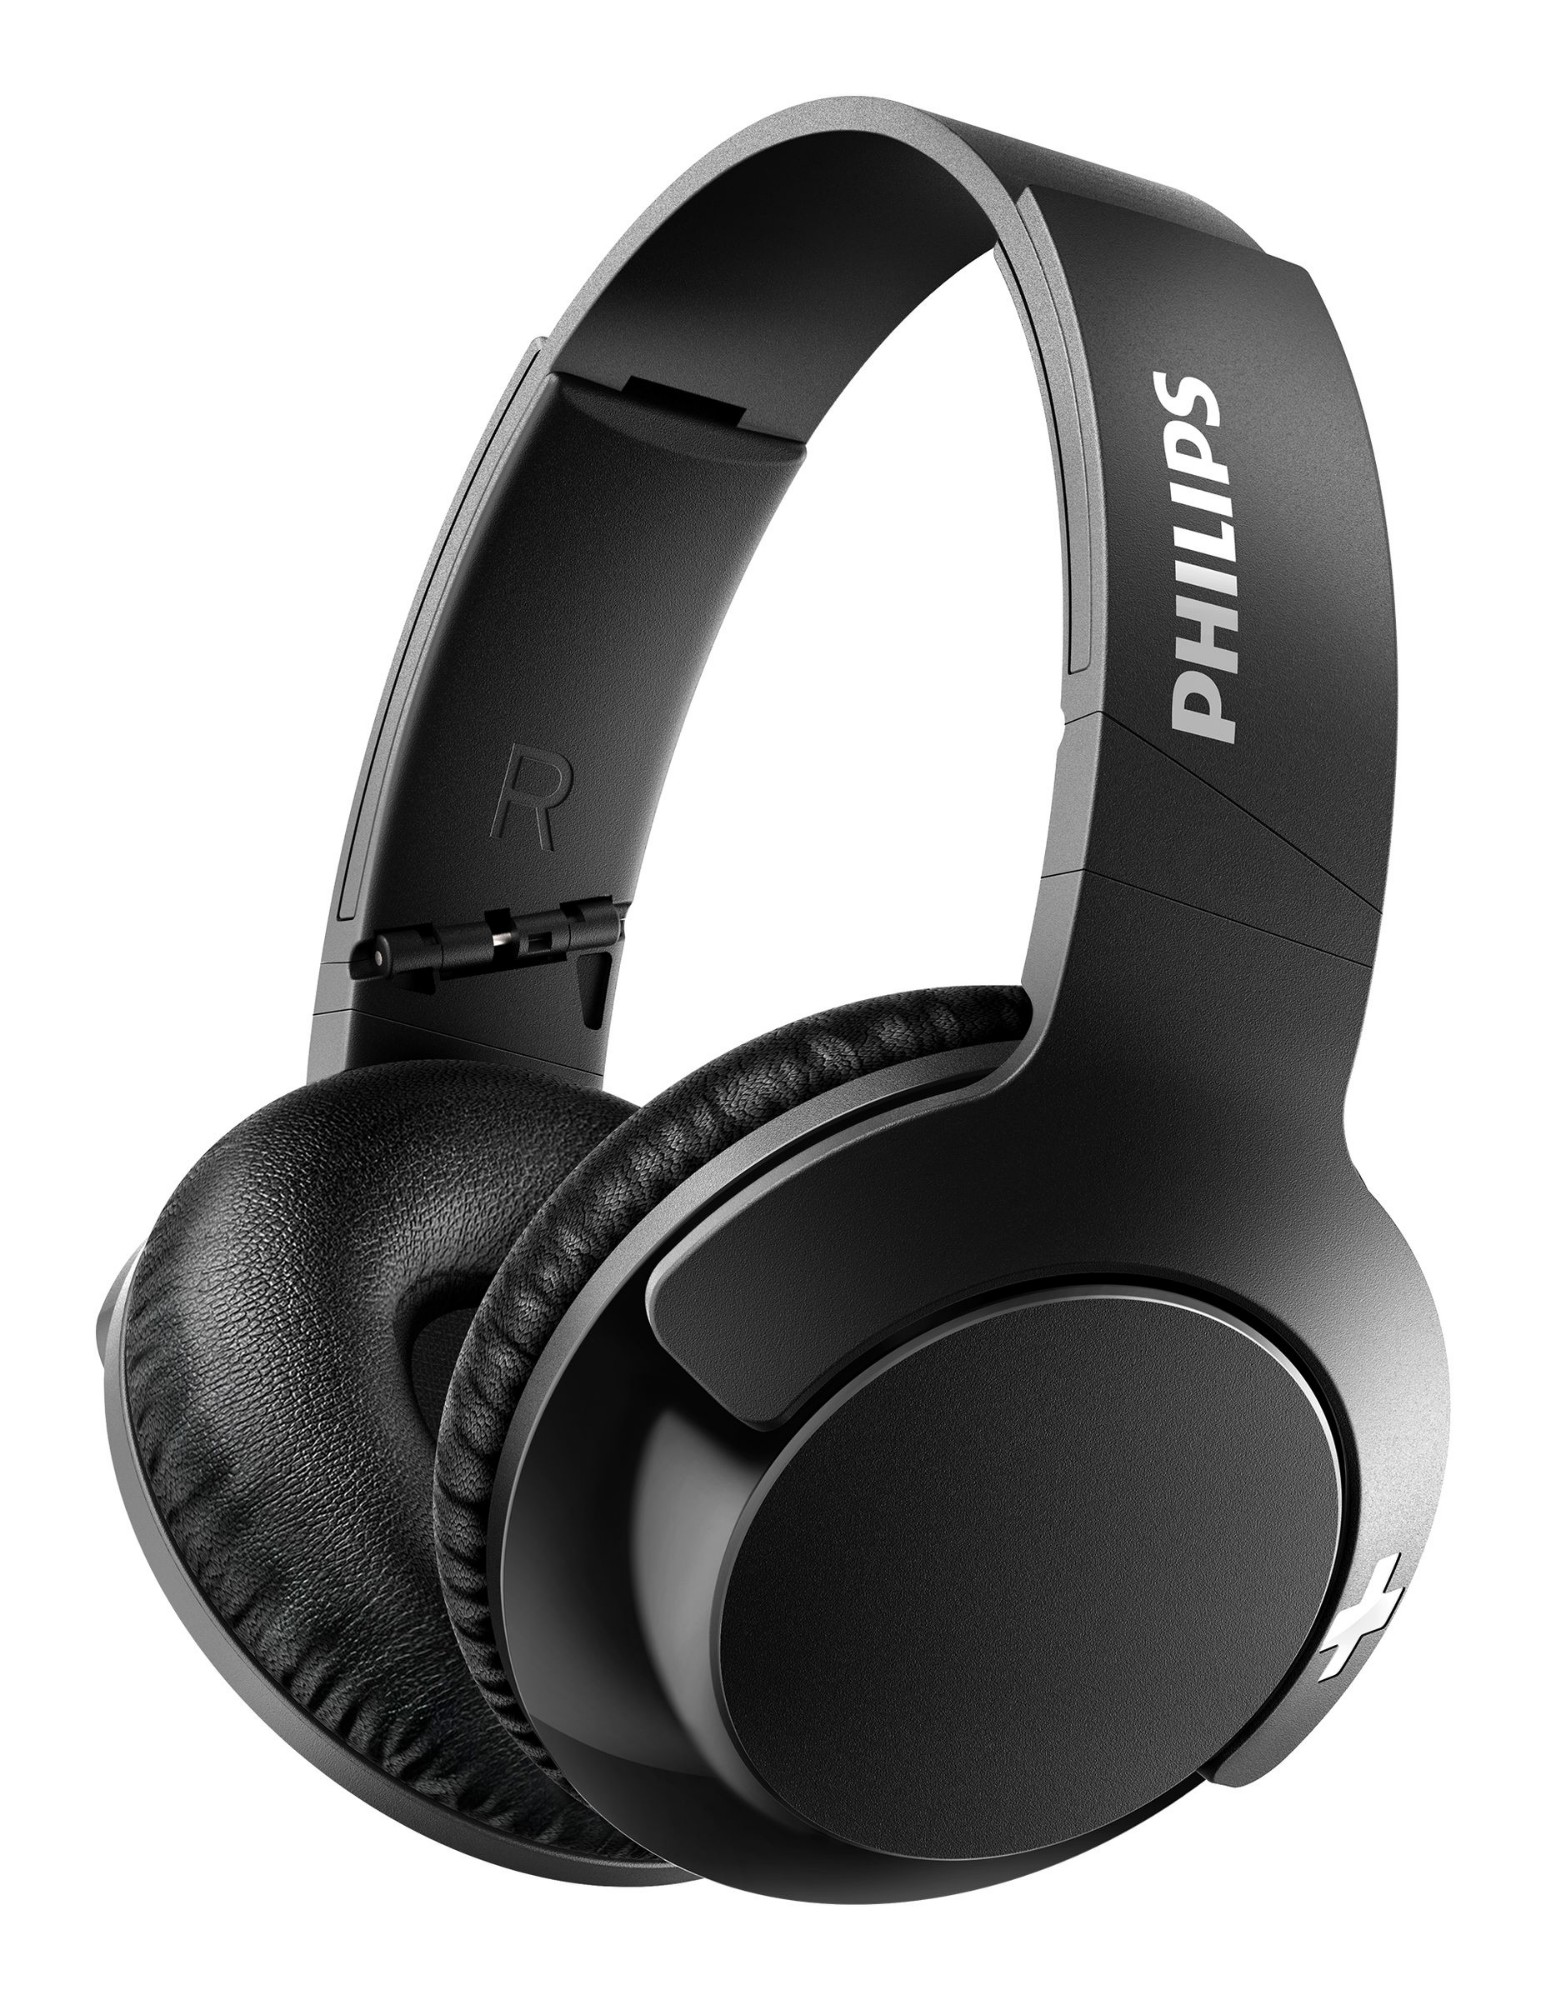 Philips Bluetooth headset SHB3175BK/00